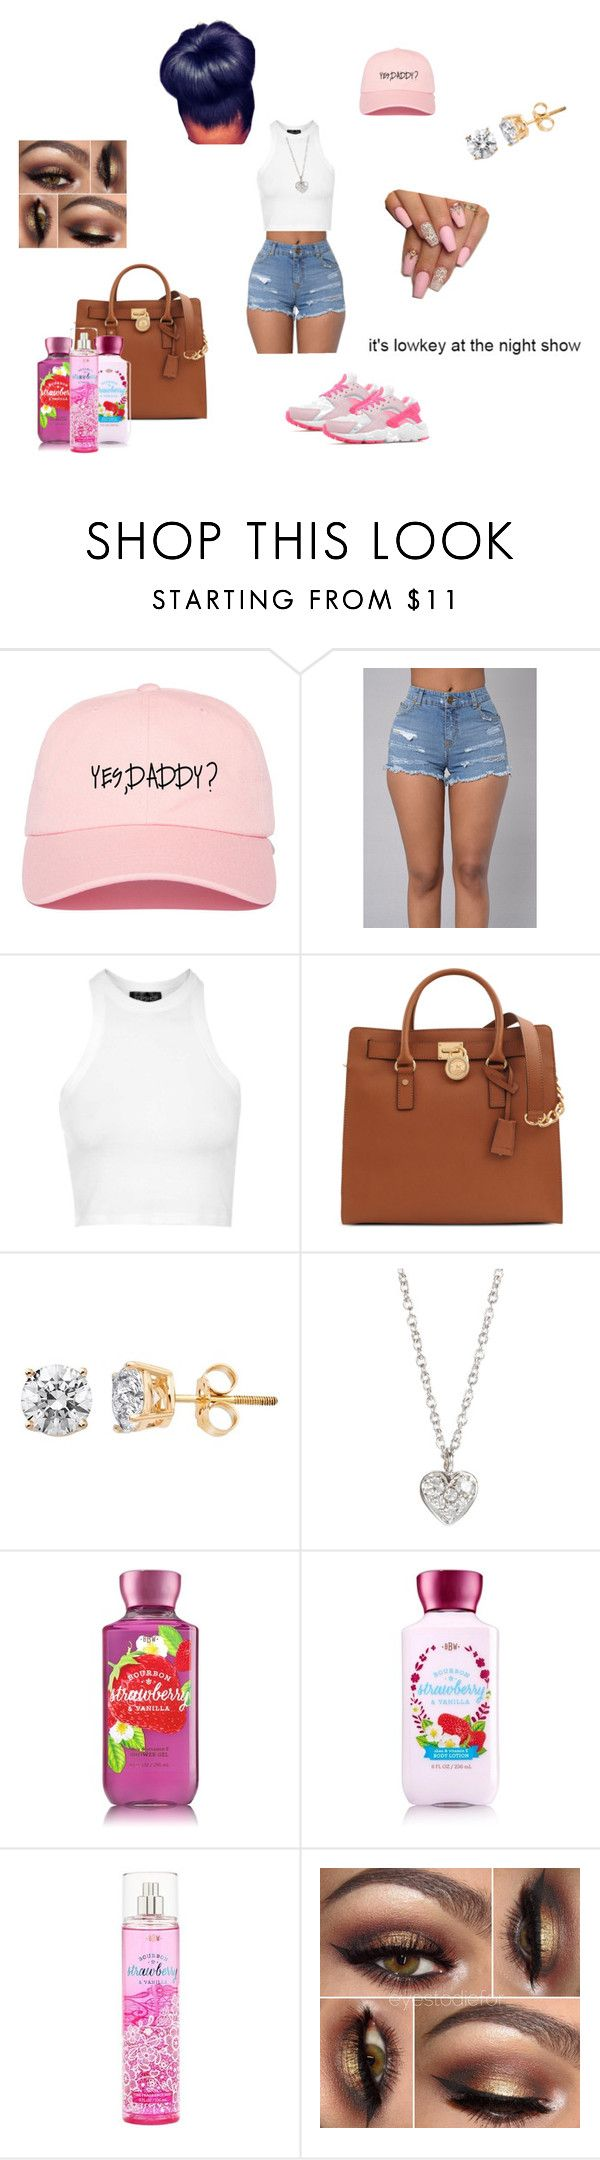 """You Was Right ~ Lil Uzi Vert"" by themindlesschannel ❤ liked on Polyvore featuring Topshop, Michael Kors and Finn"